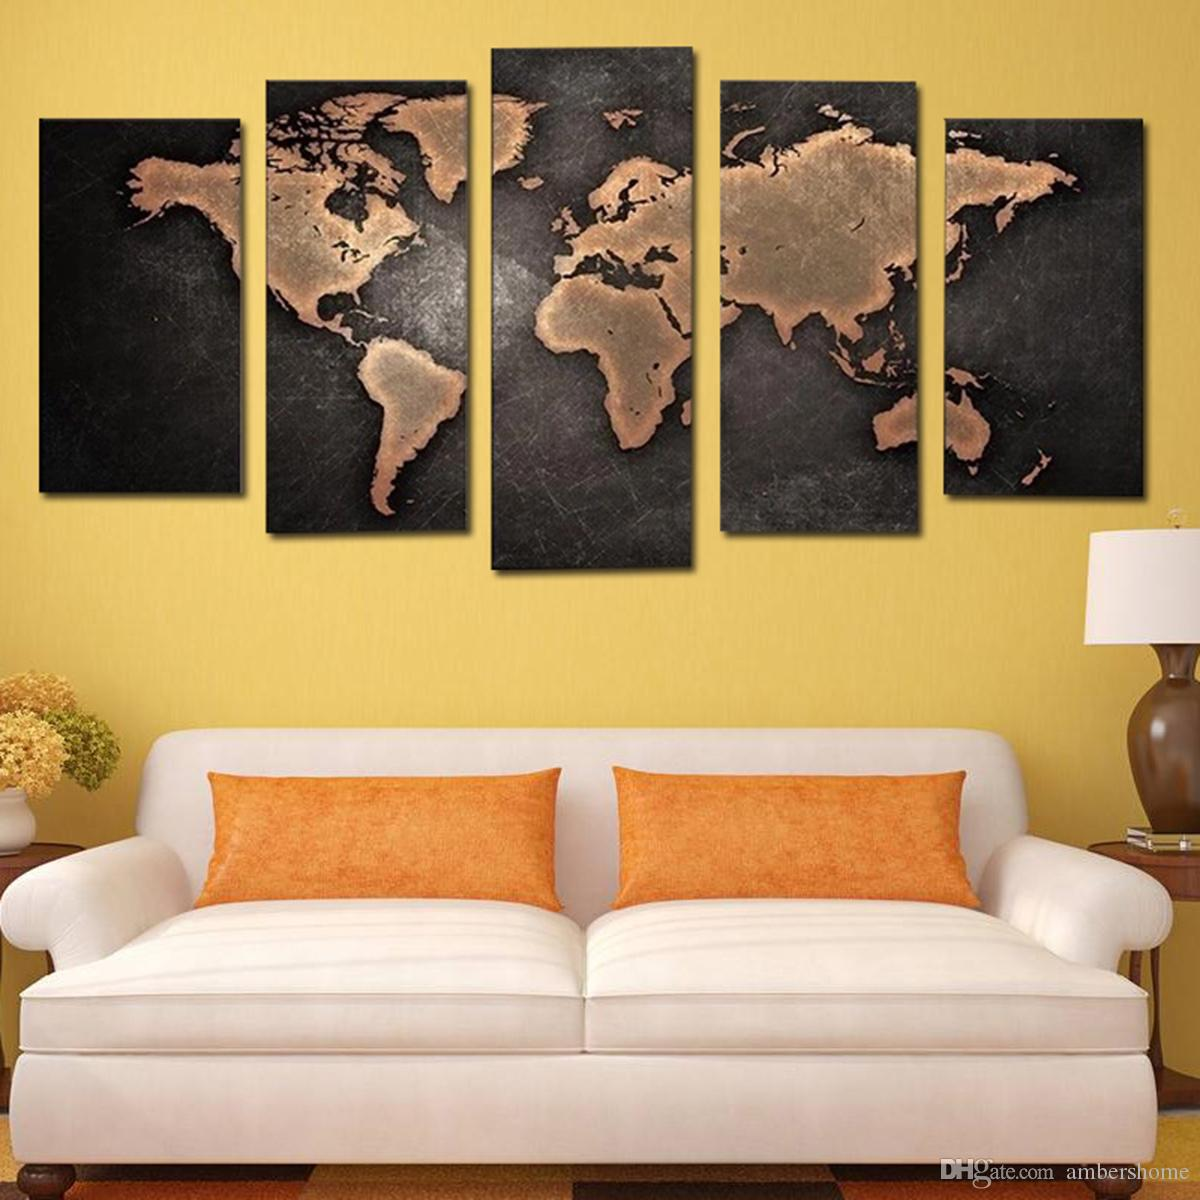 World Map Mural Hand-painted Painting Canvas Art Decorative Scenery ...